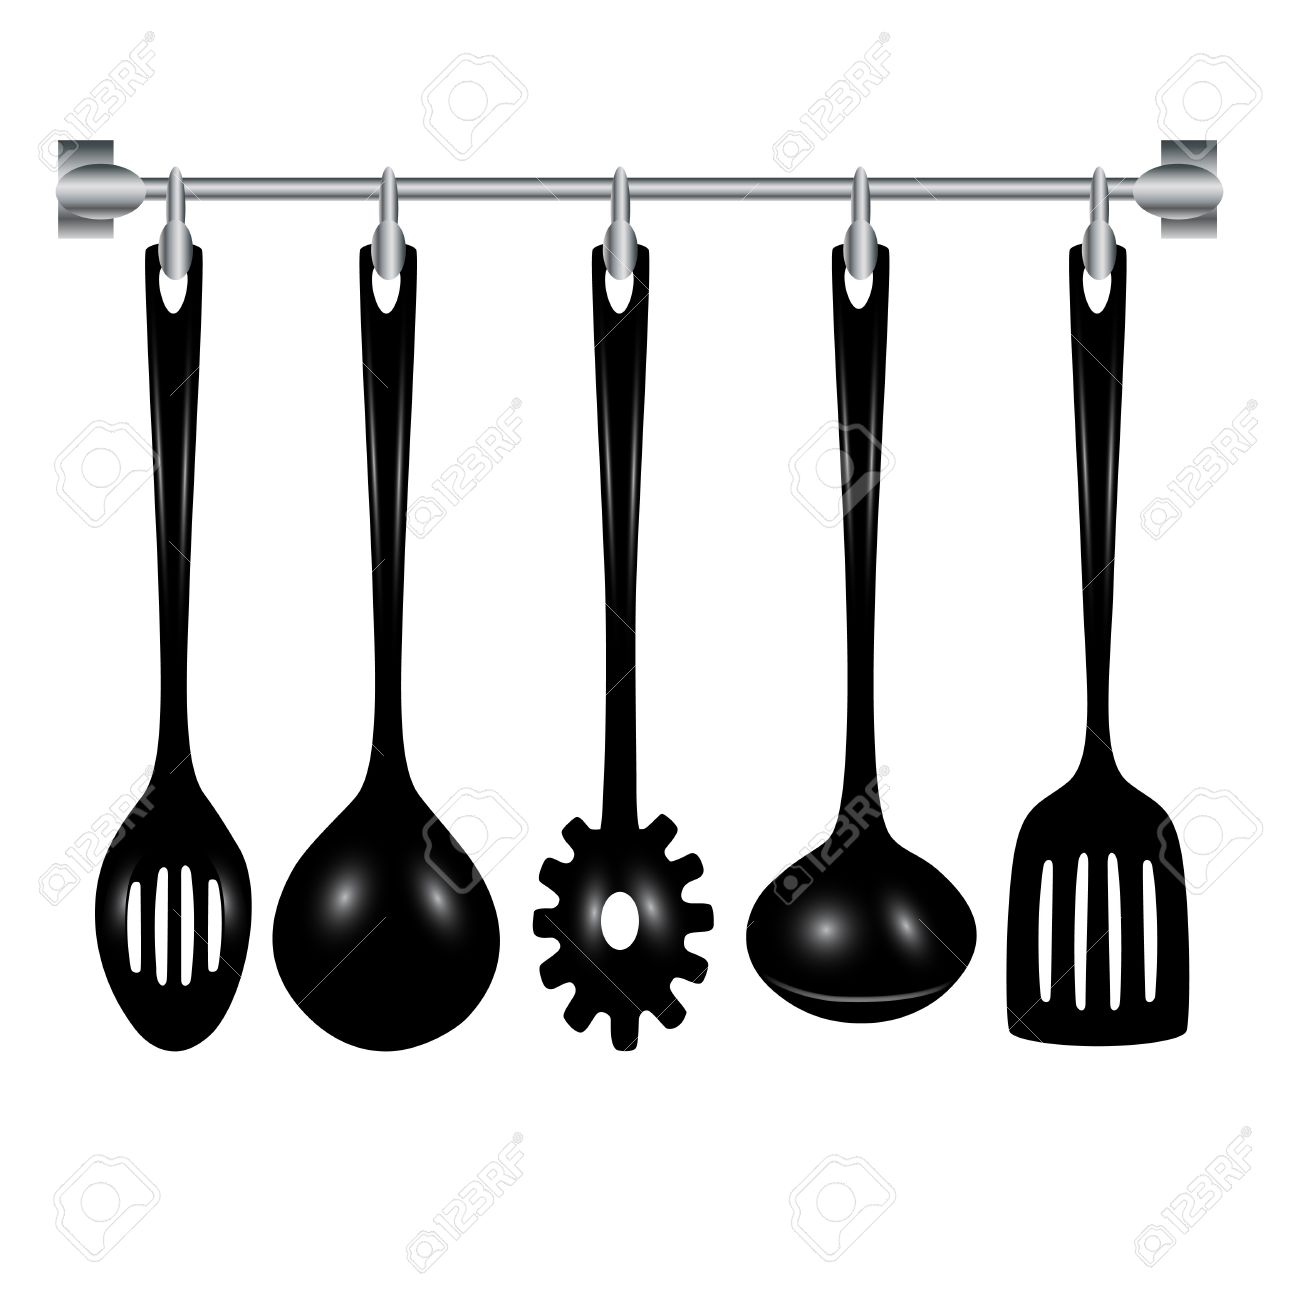 Exceptionnel Kitchen Utensils Hanging Isolated On White Stock Vector   20203993